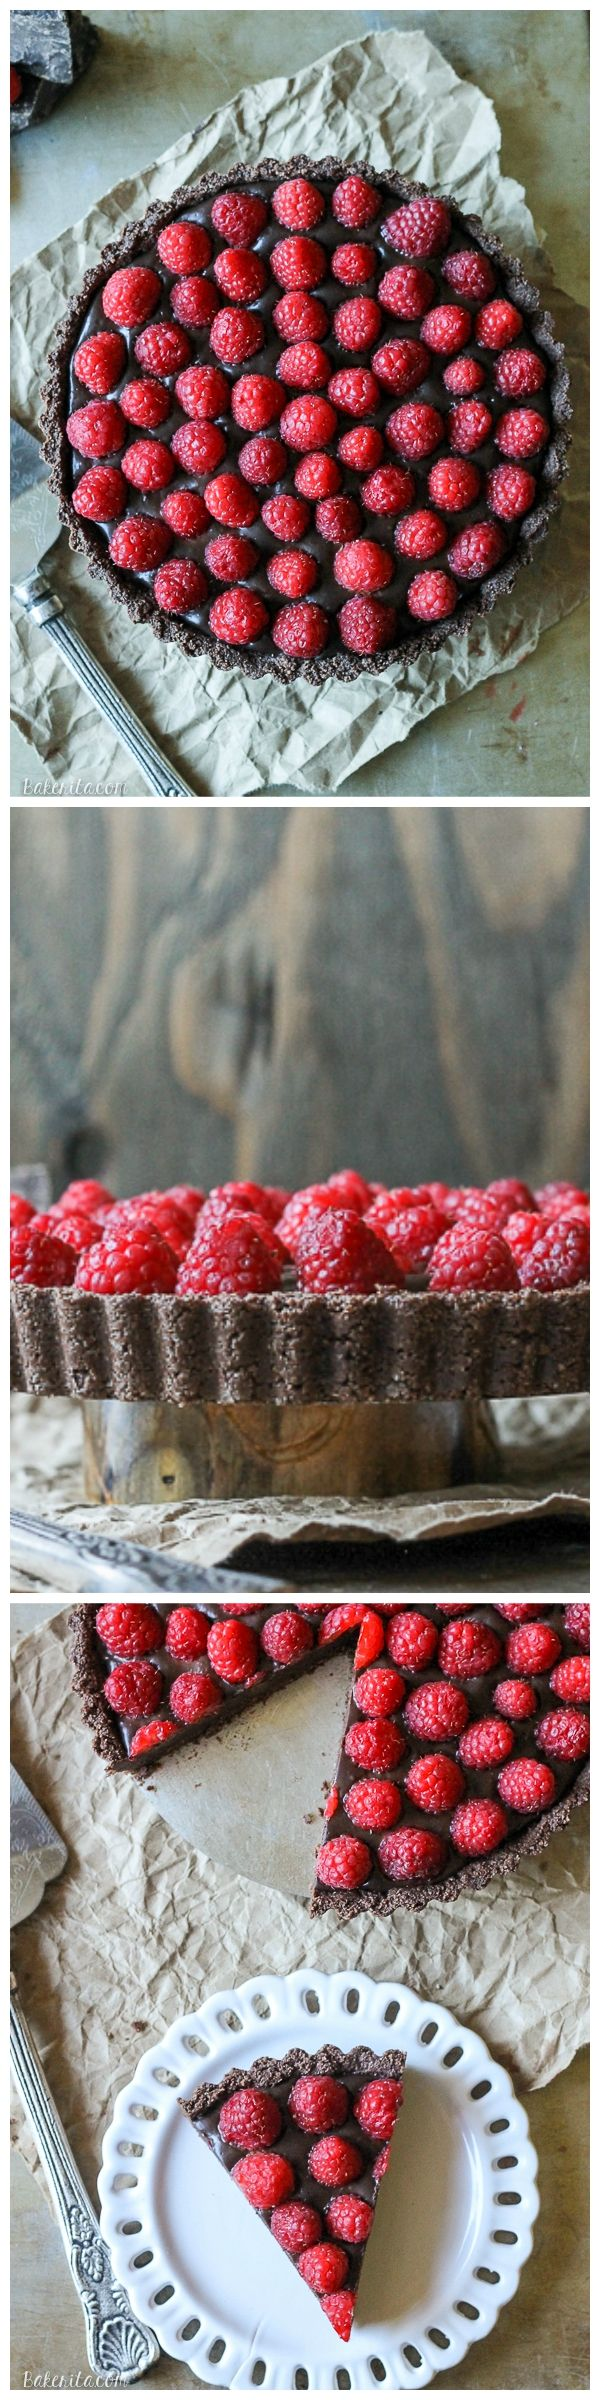 This No-Bake Raspberry Chocolate Tart comes together in just ten minutes! It's Paleo-friendly, gluten free, vegan, and refined sugar free.